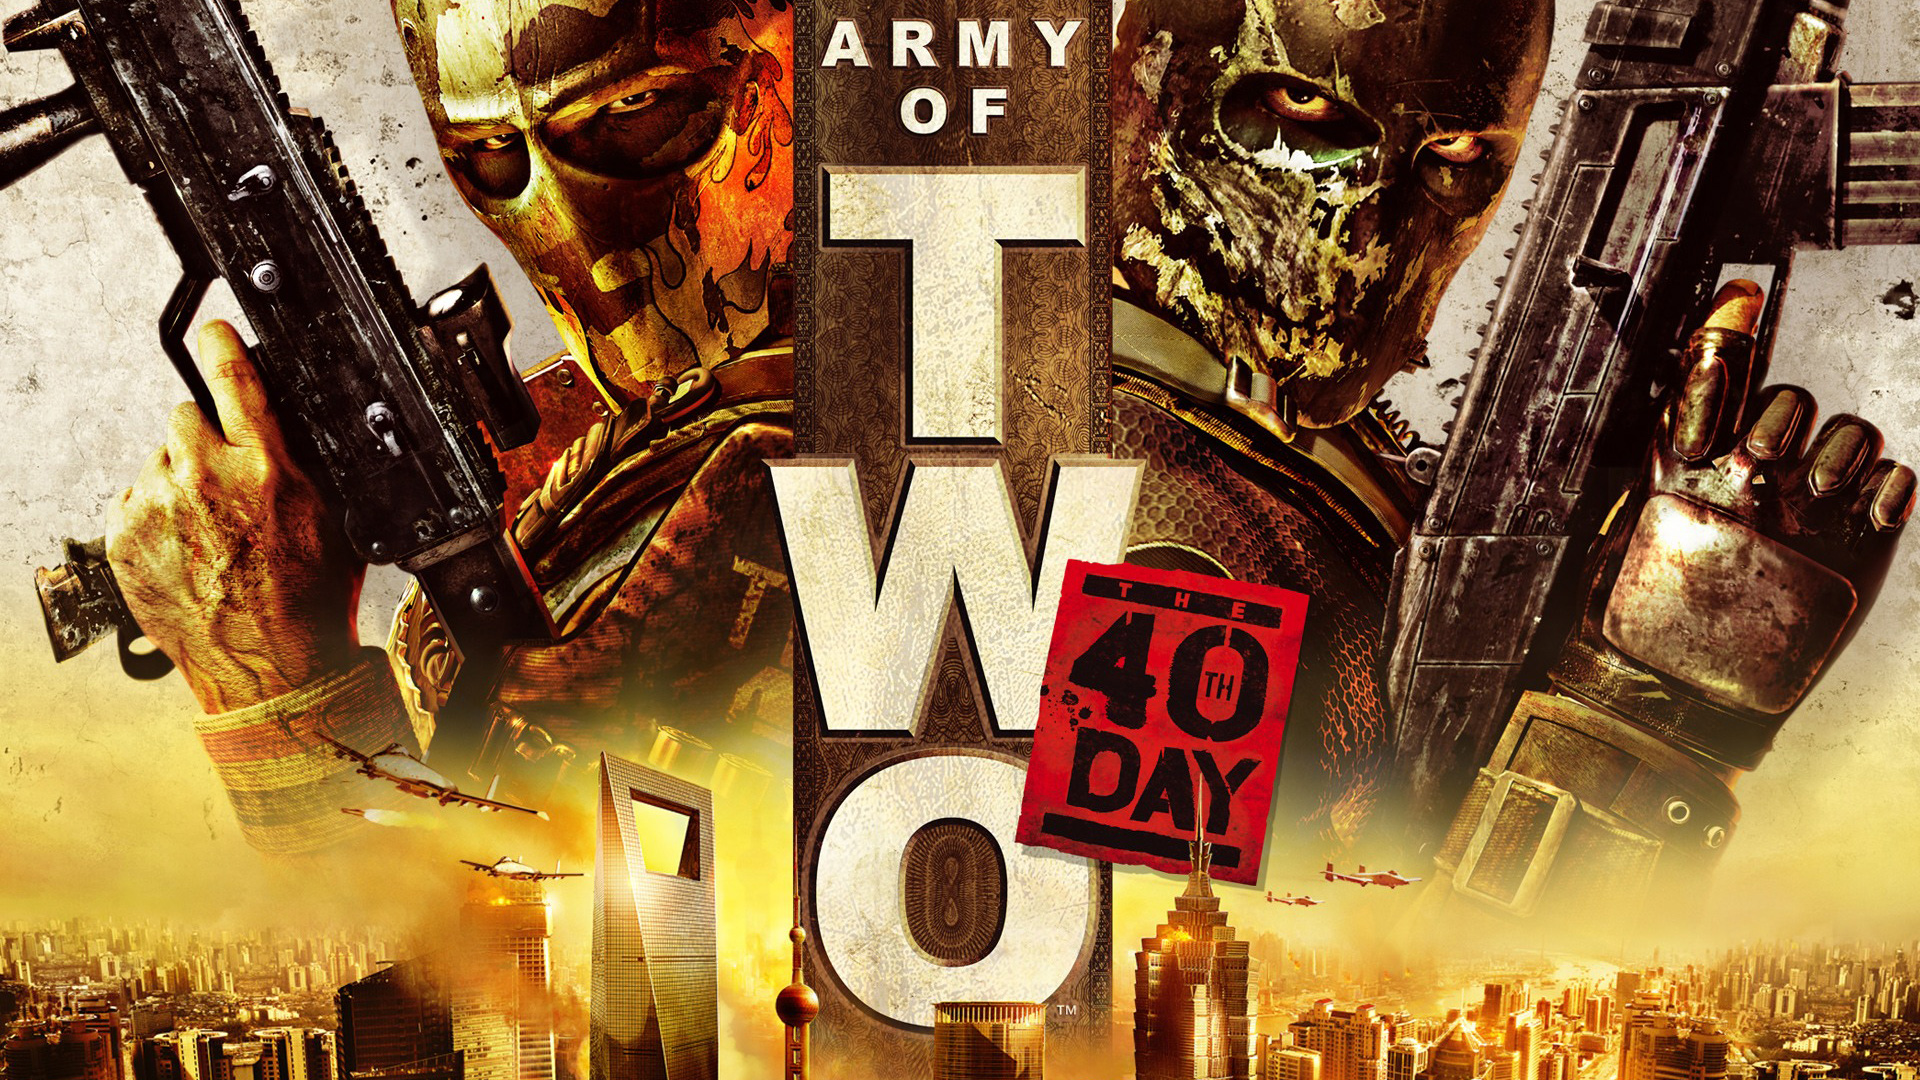 Army of Two: The 40th Day Wallpaper in 1920x1080